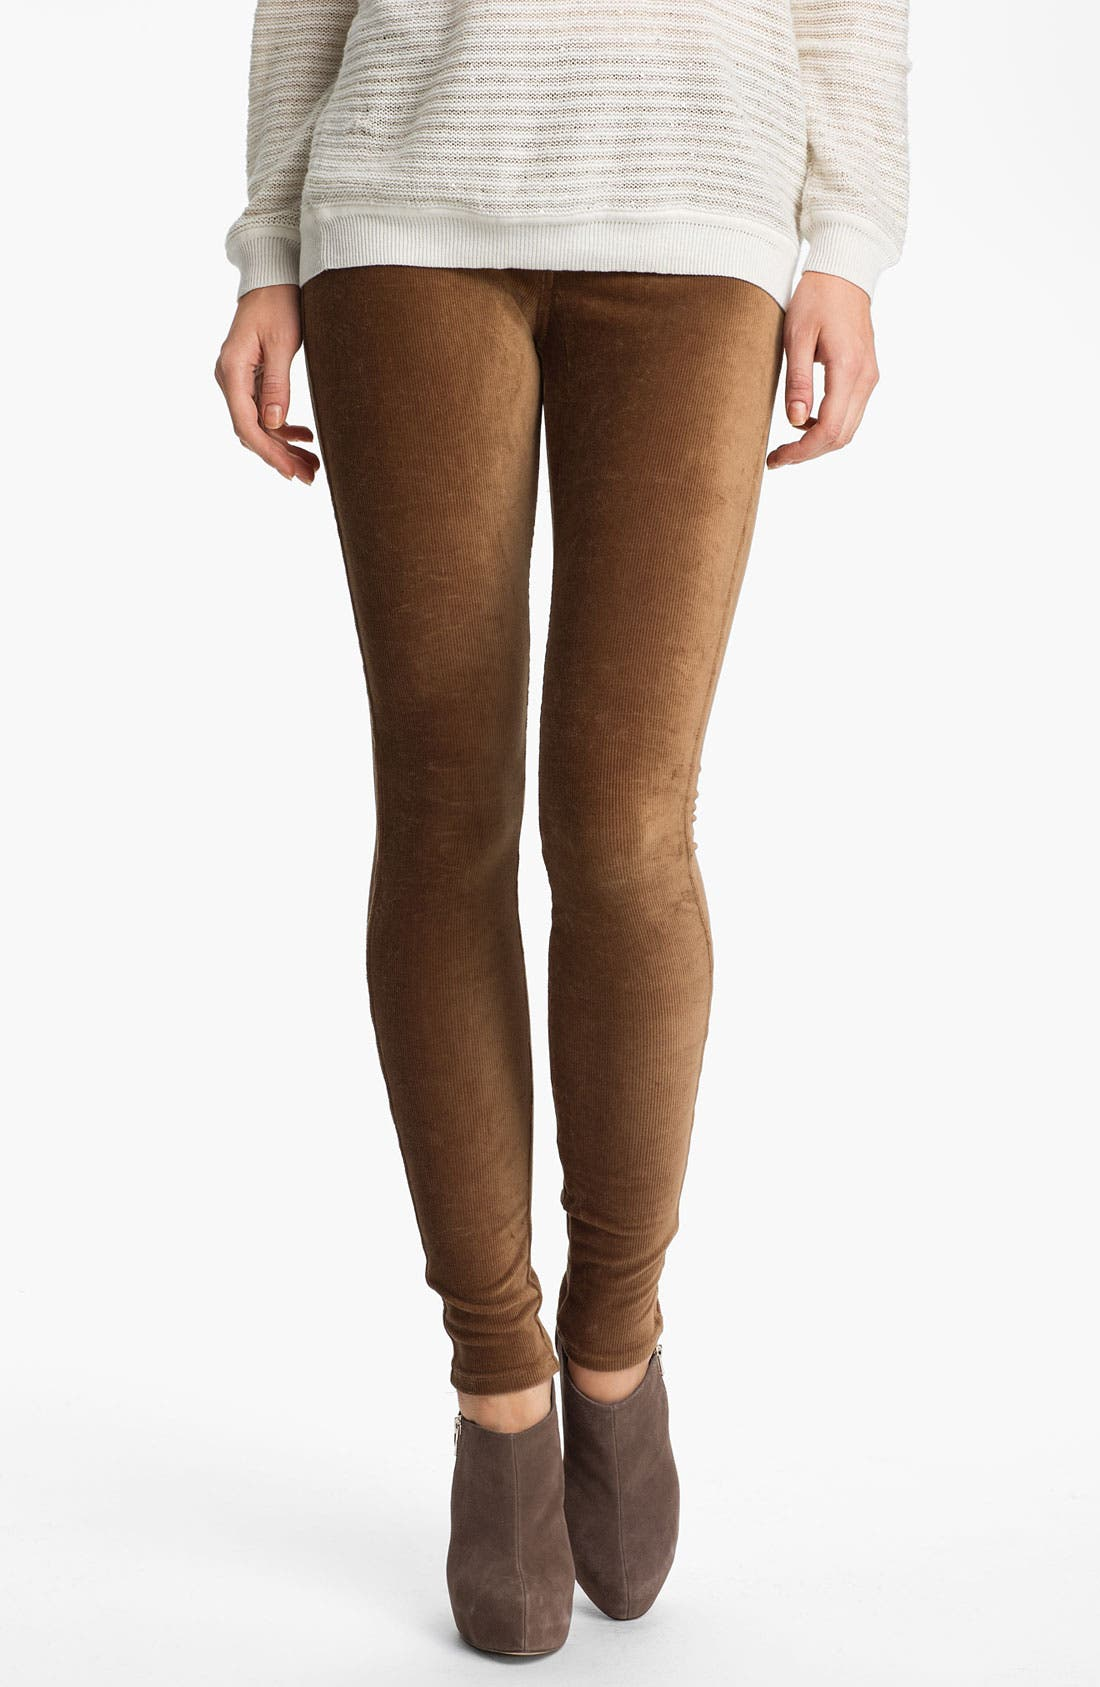 Alternate Image 1 Selected - Hue Corduroy Leggings